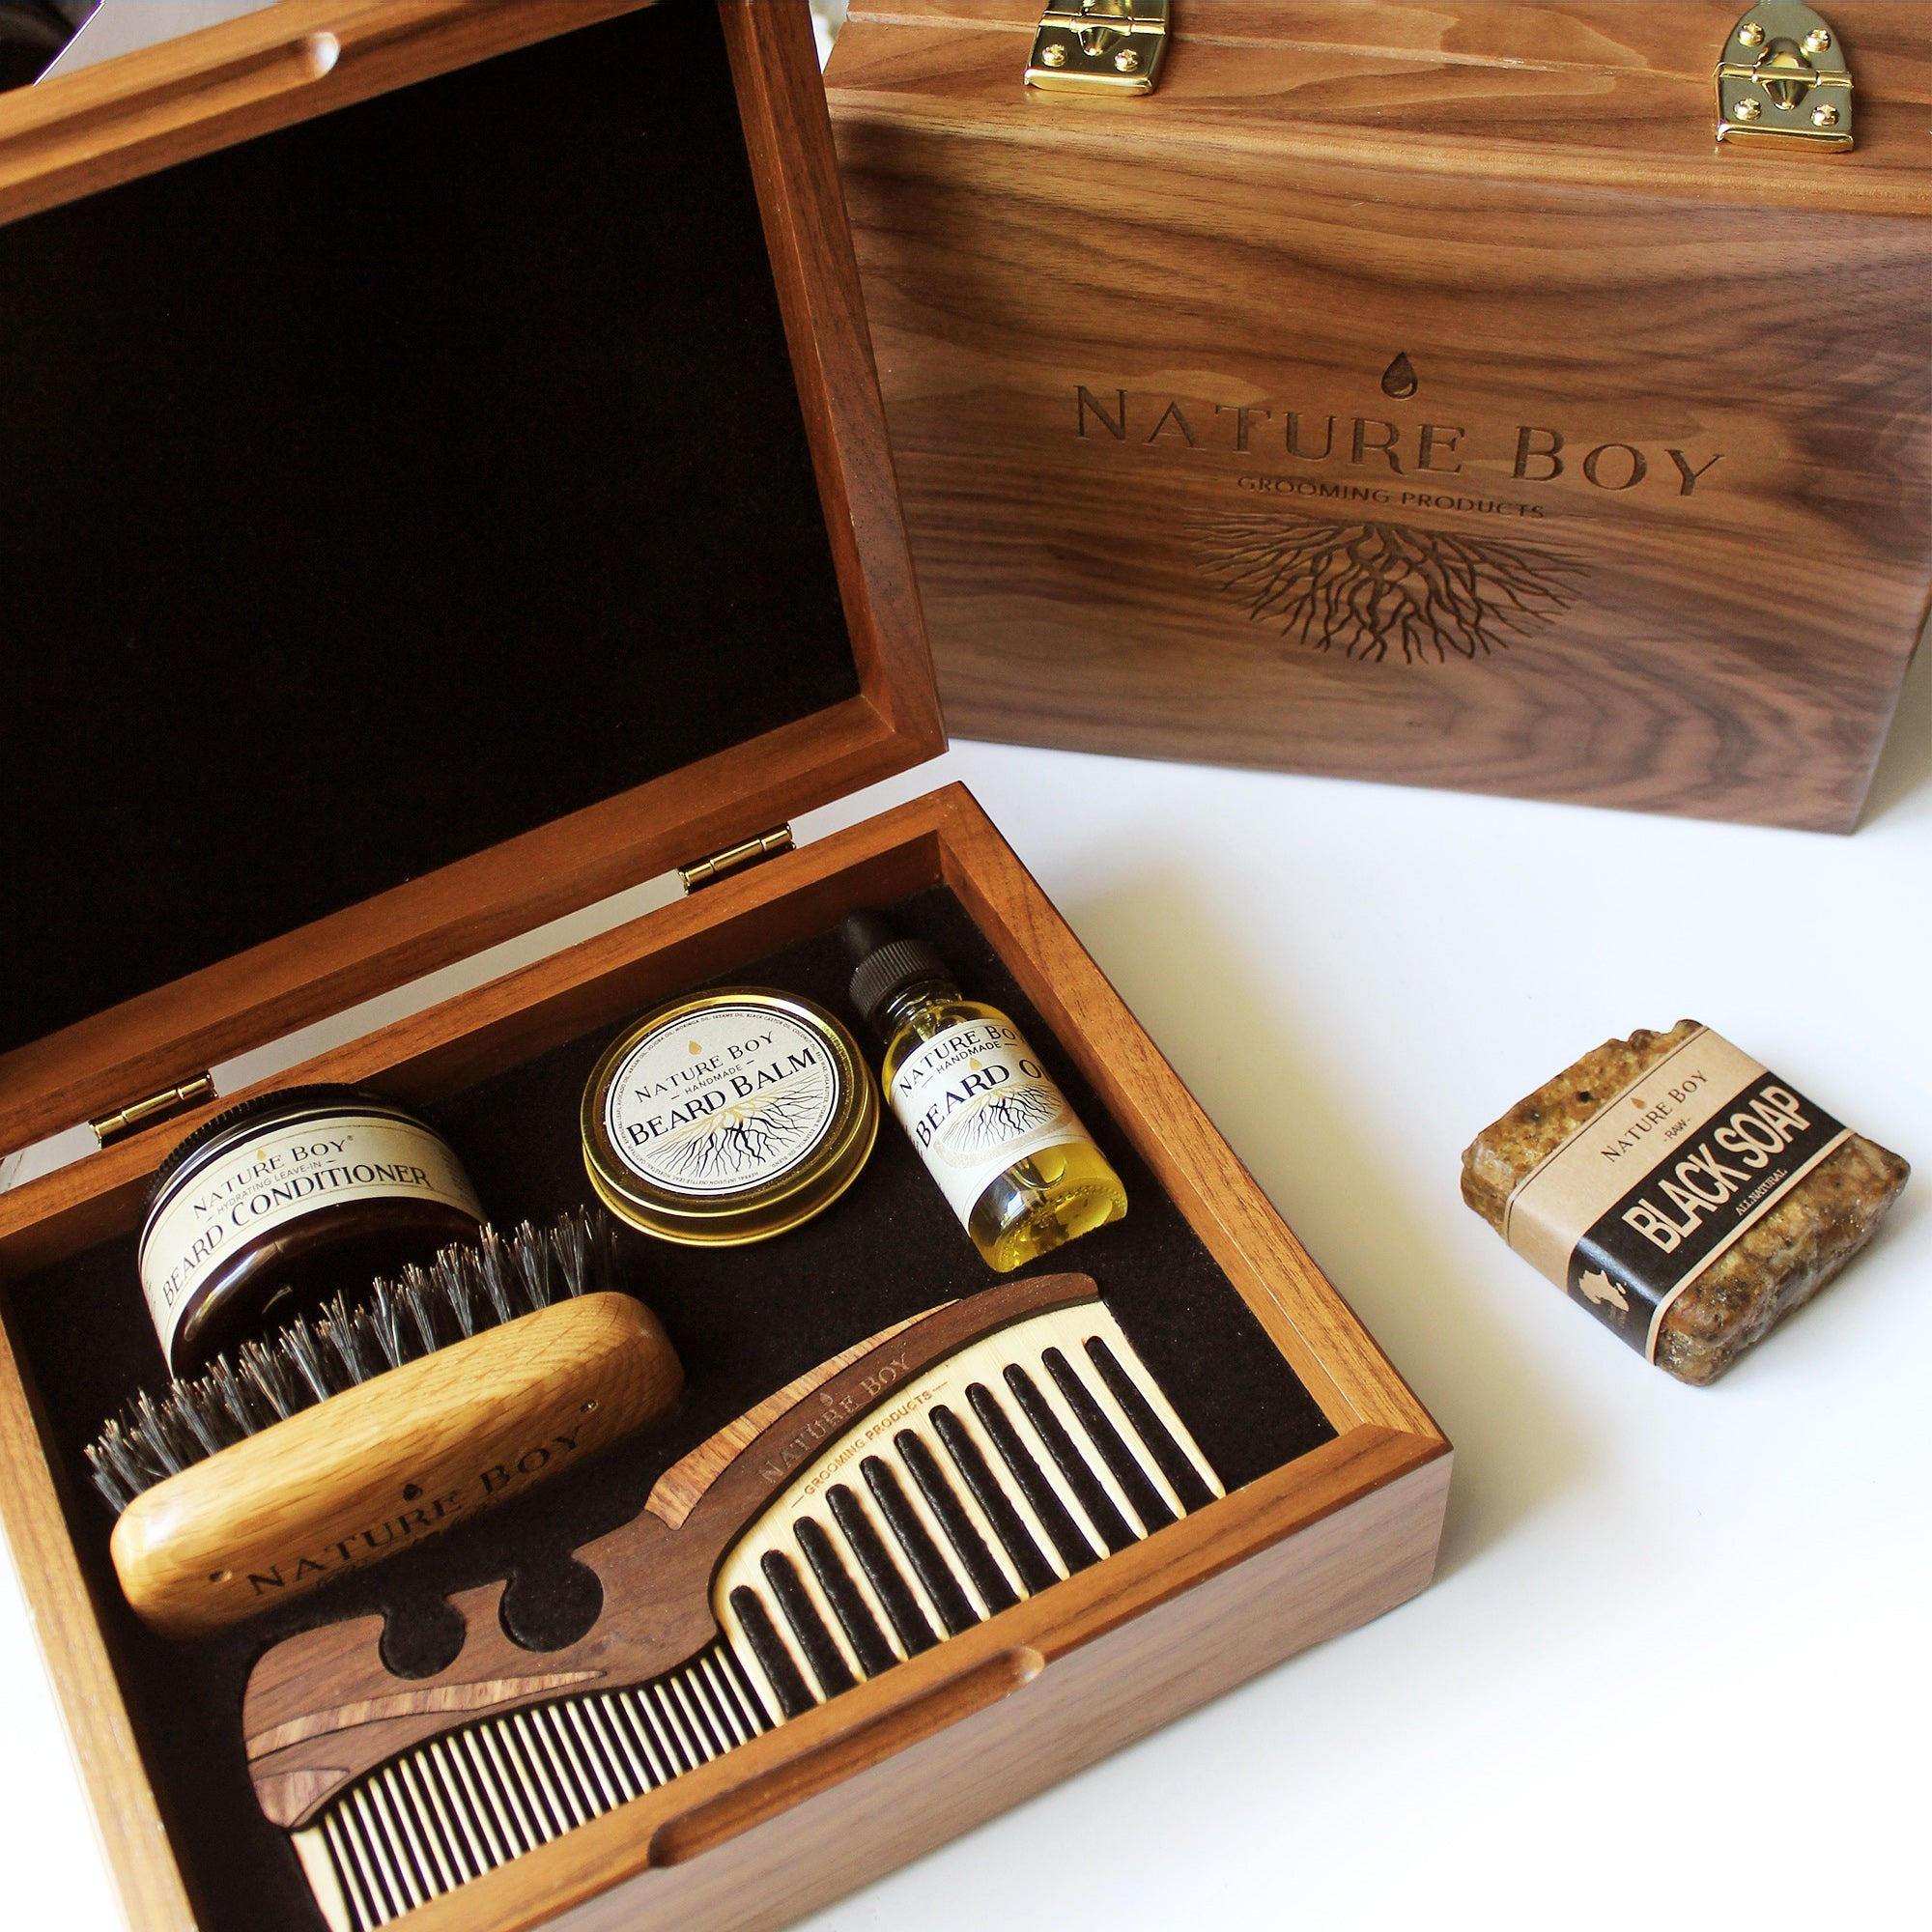 NATURE BOY Deluxe Beard Kit w/ Connoisseur's Grooming Box (PRE-ORDER)